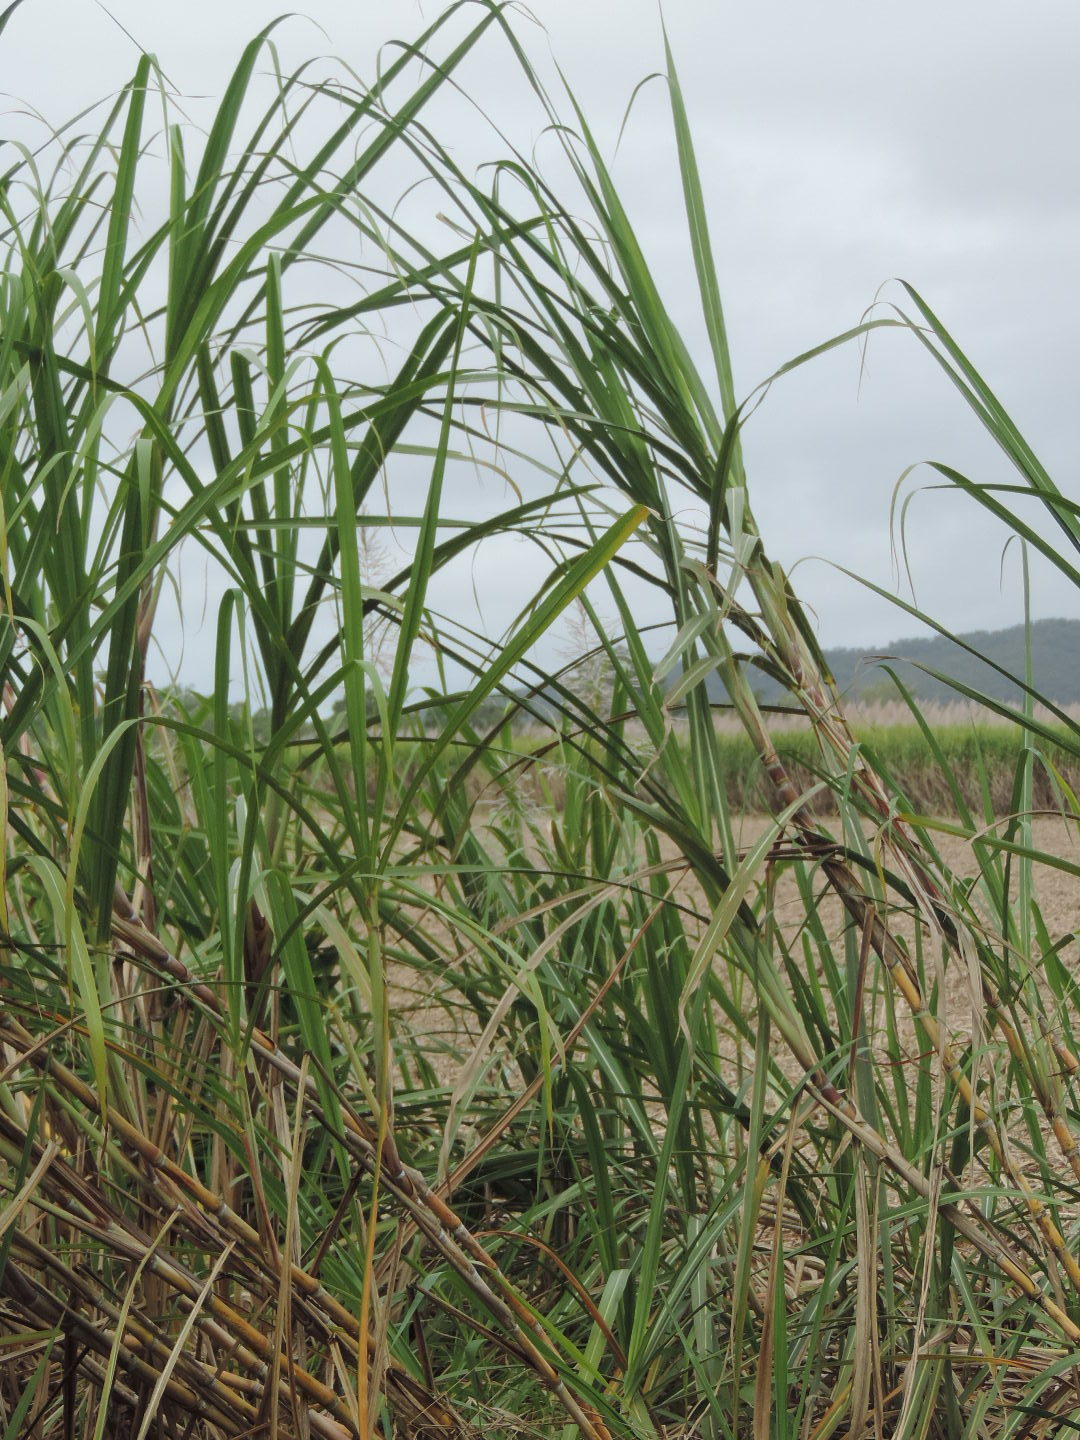 New sugarcane as a feedstock for biodiesel and ethanol